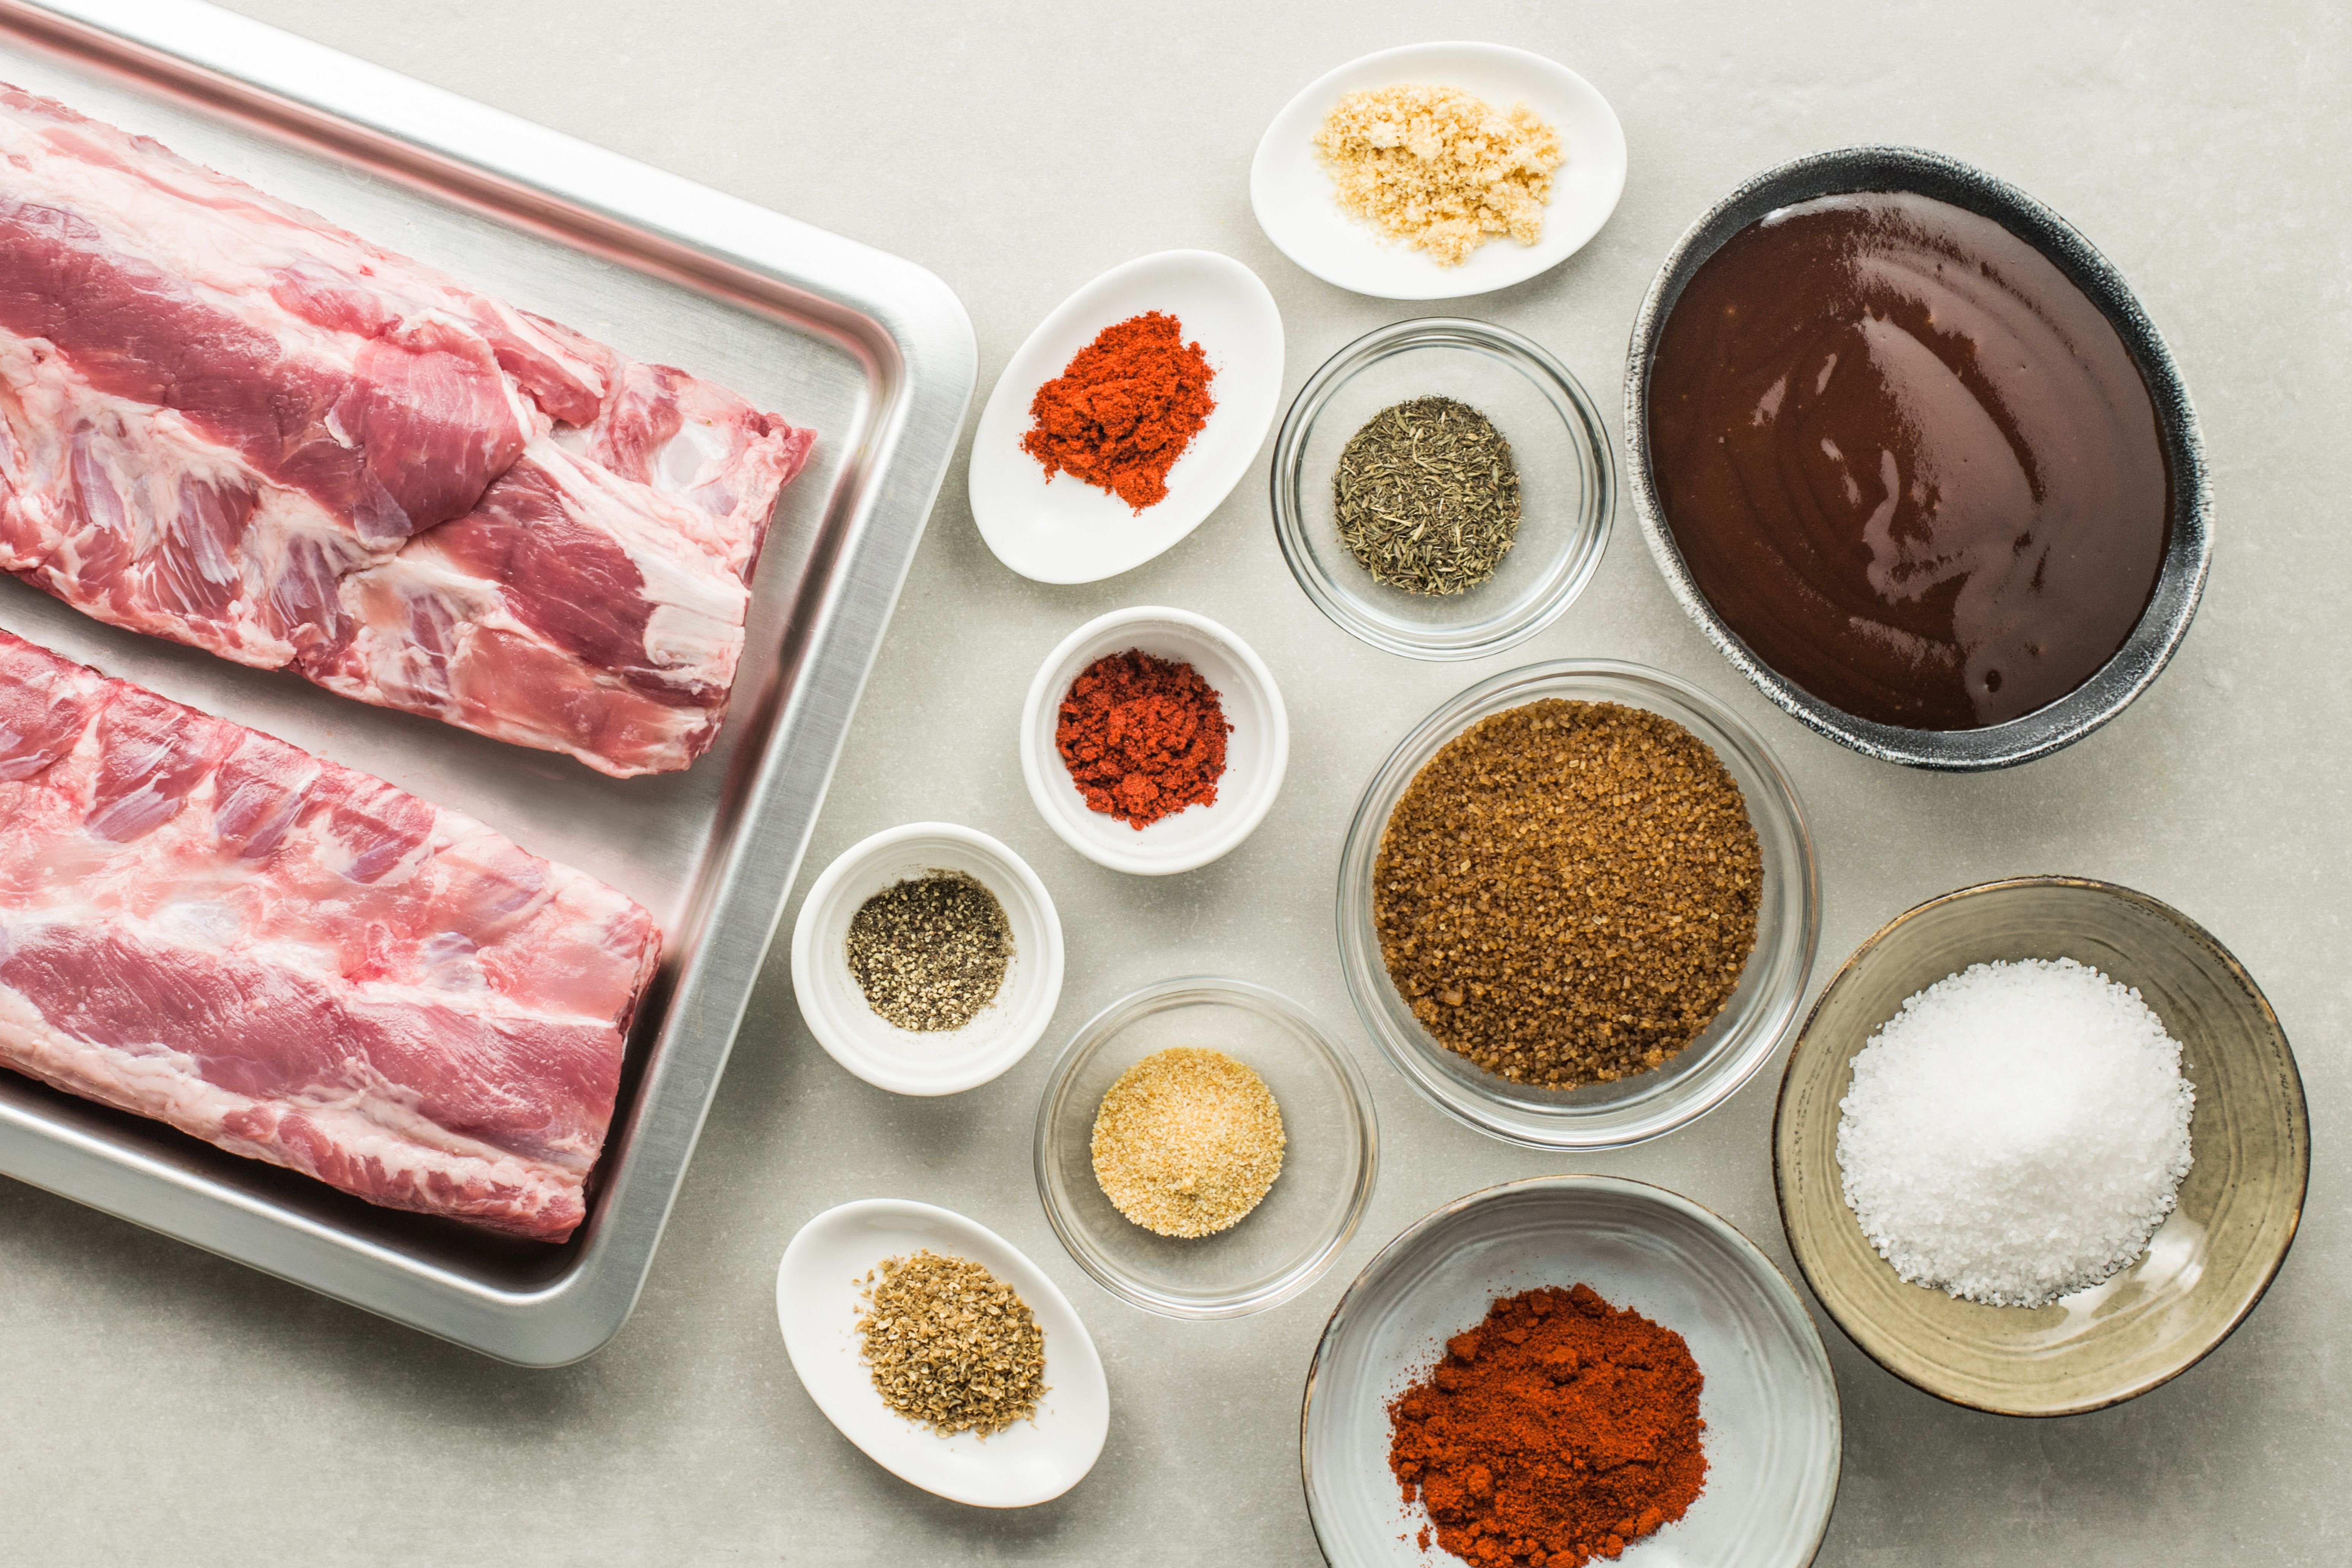 Ingredients for baked barbecue baby back ribs